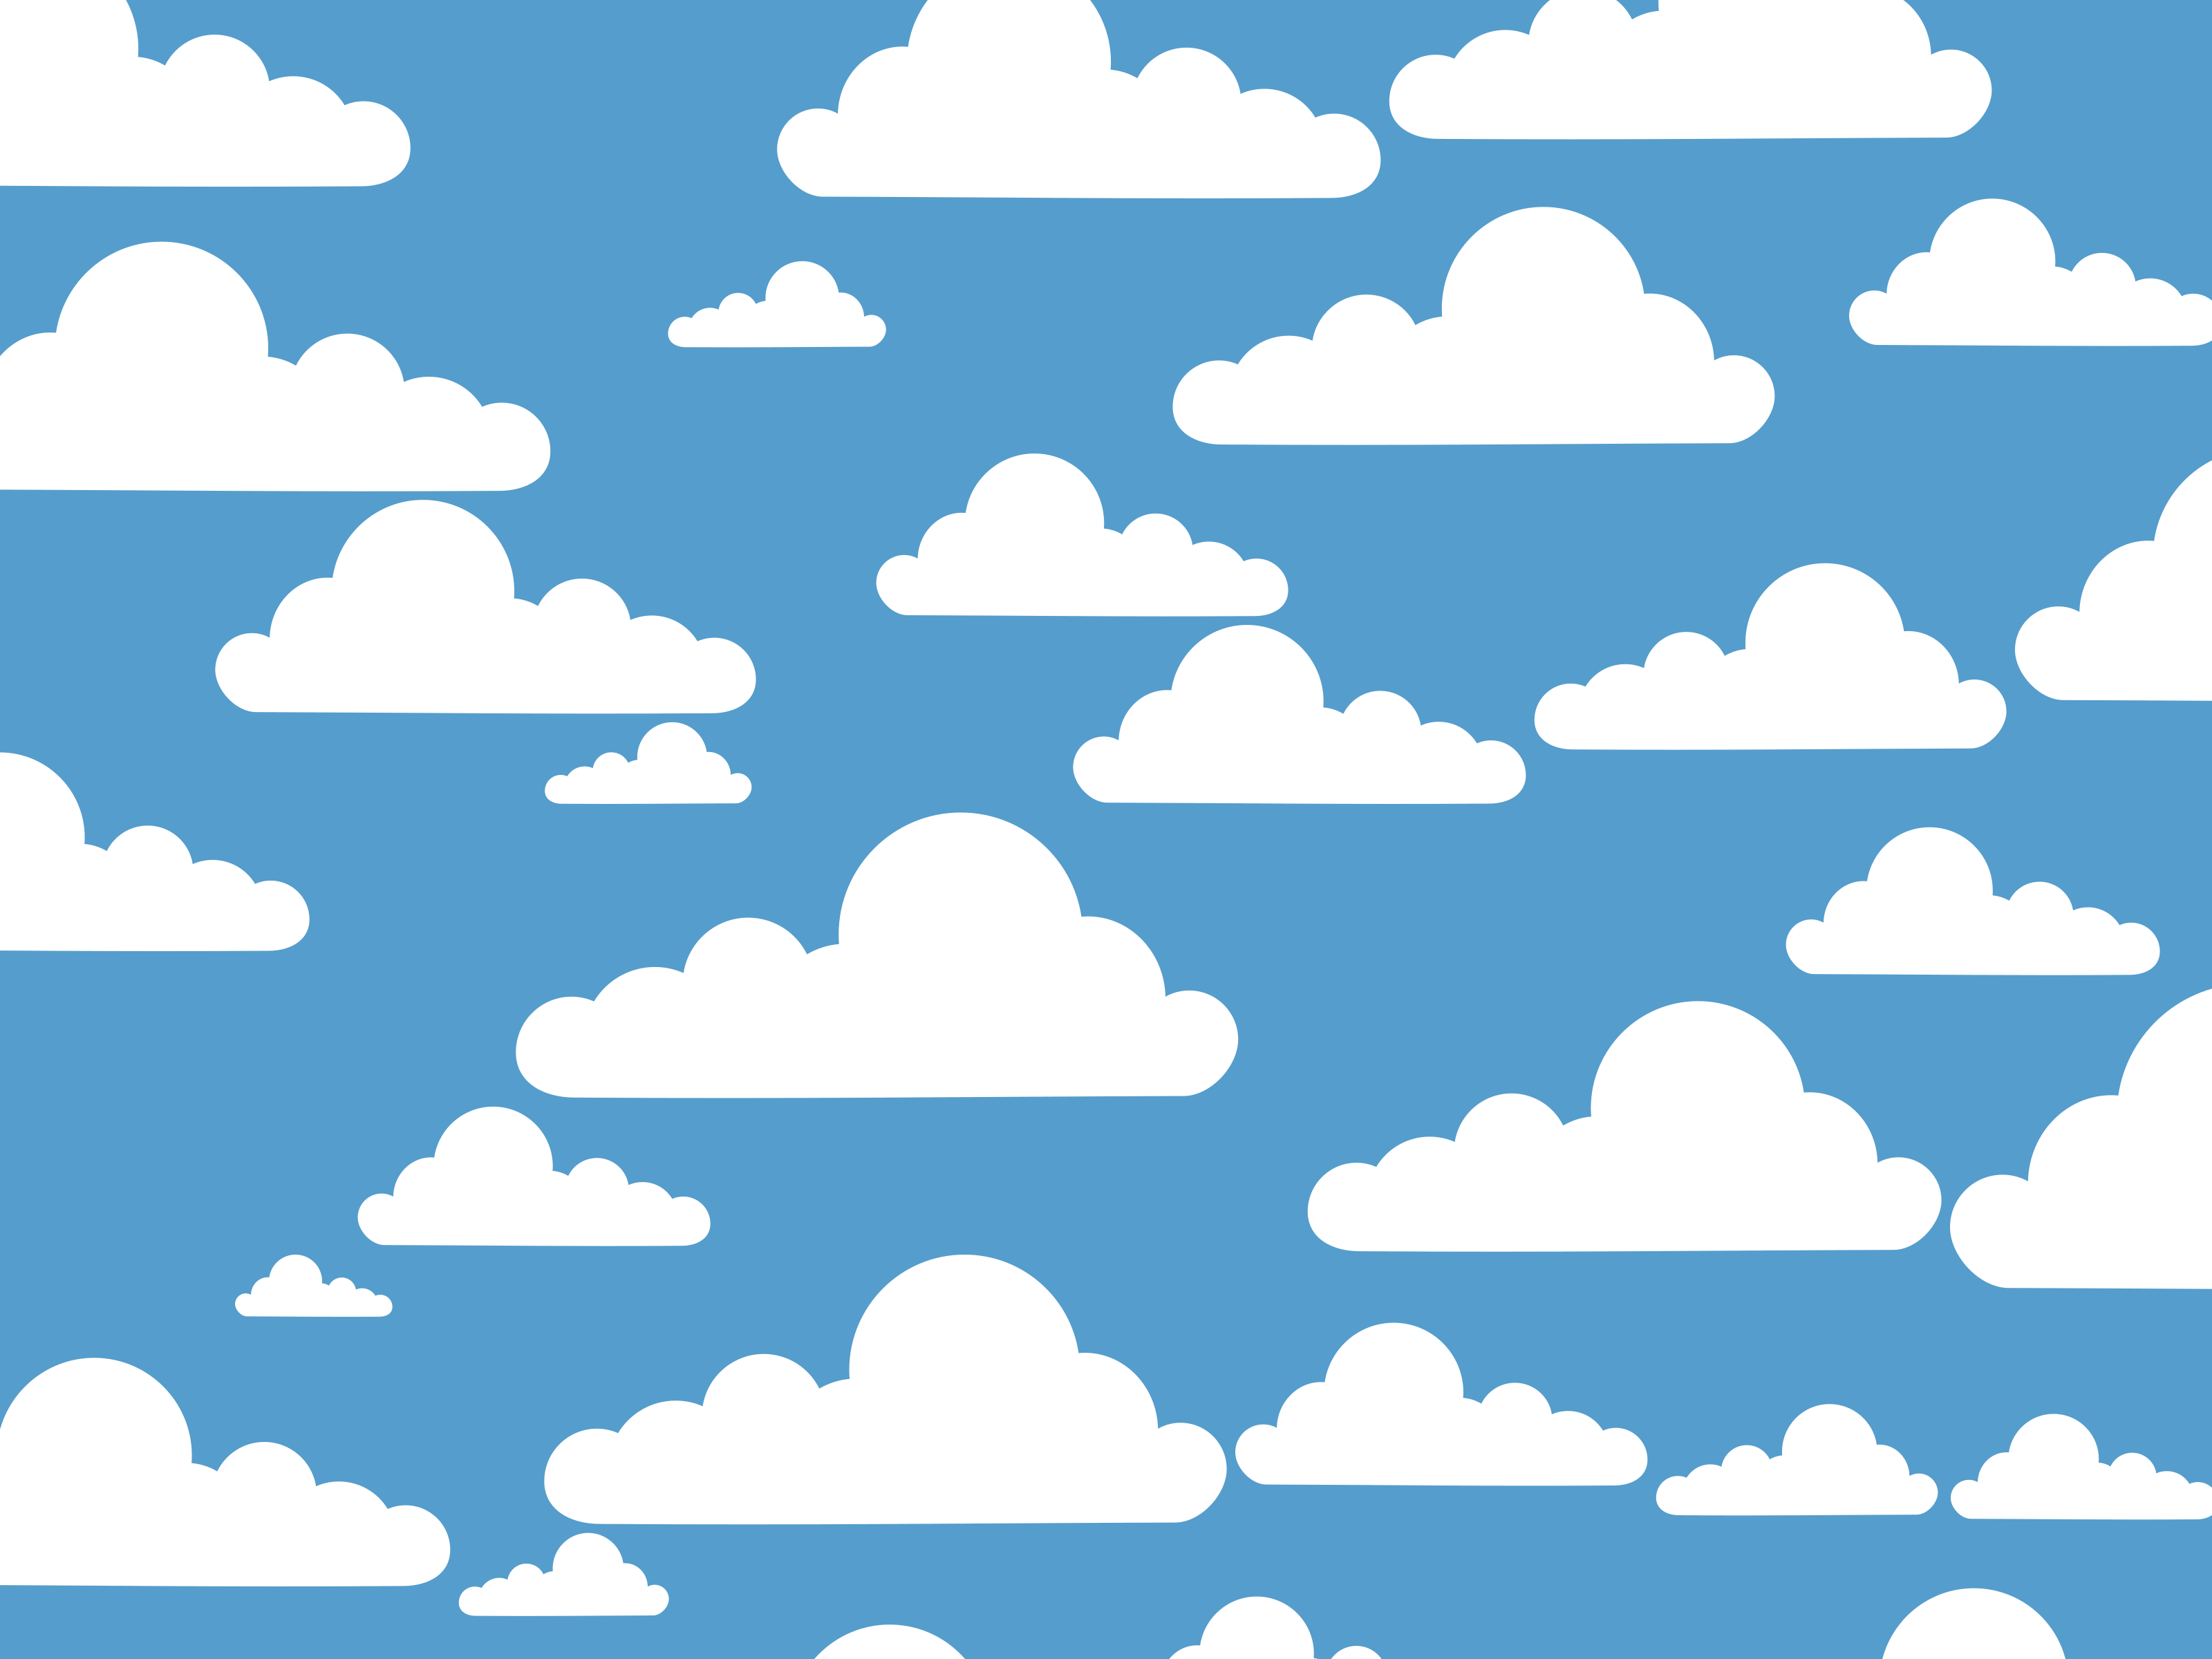 cloud patterns - Vatoz.atozdevelopment.co